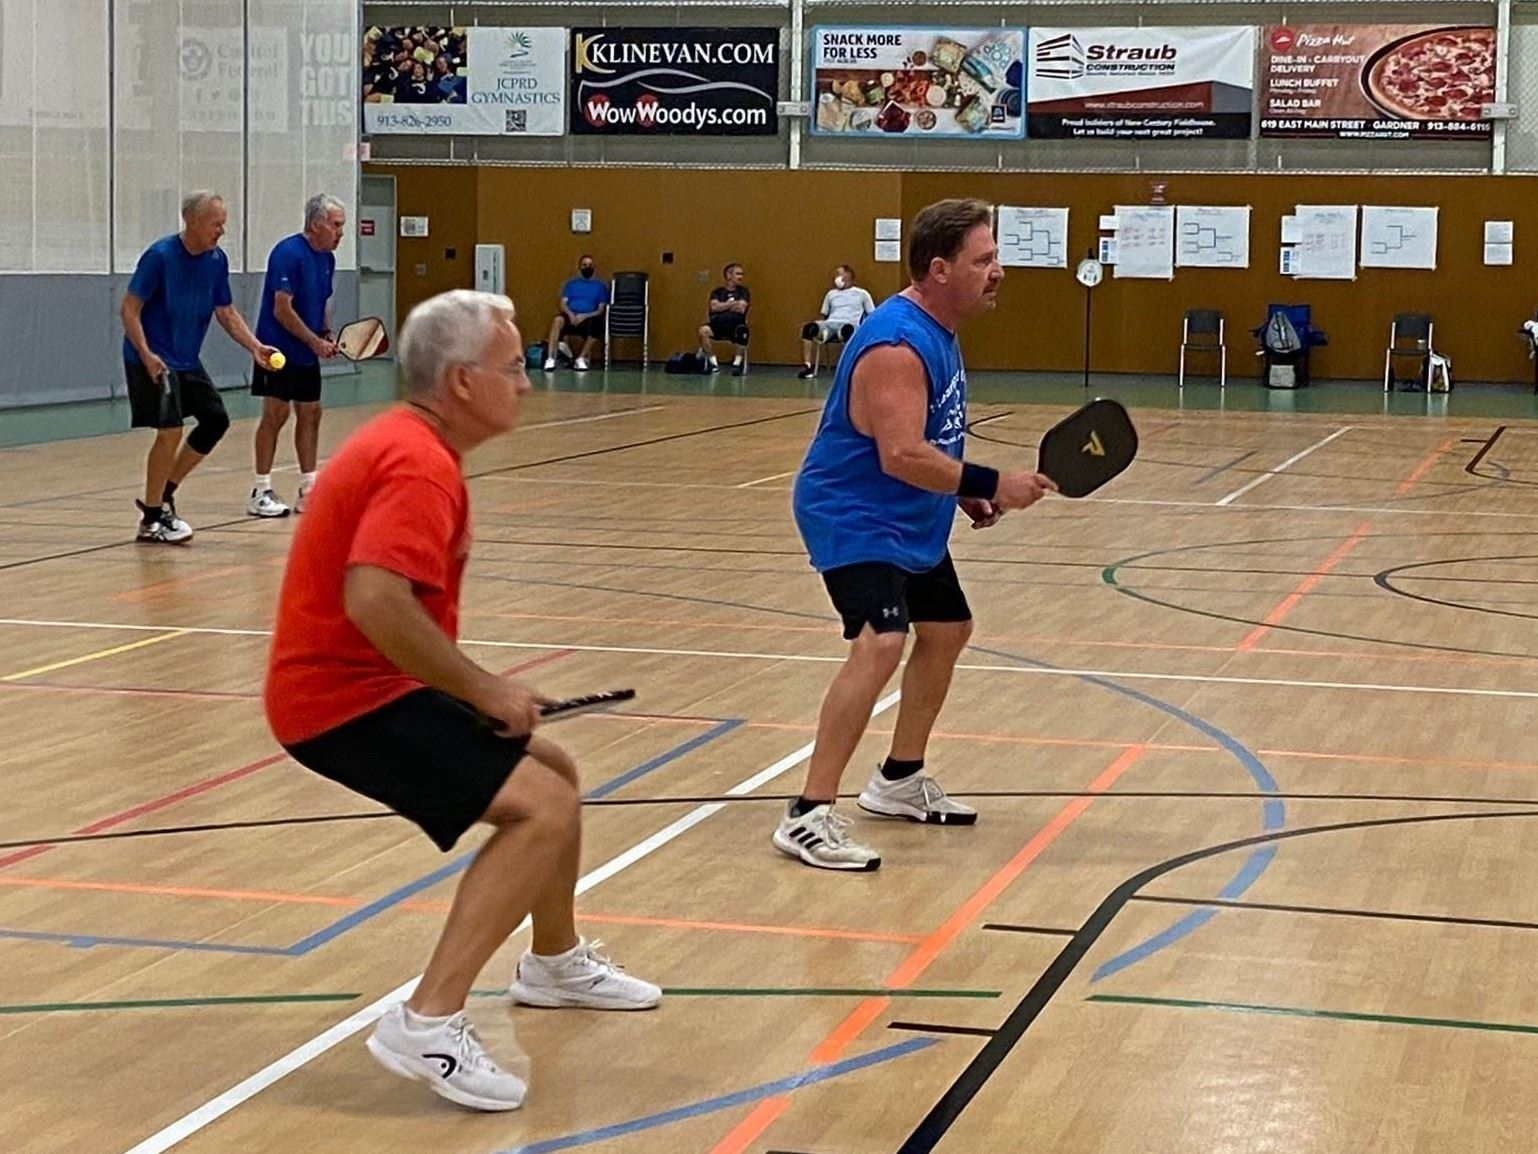 More male pickleball players at New Century Fieldhouse tournament